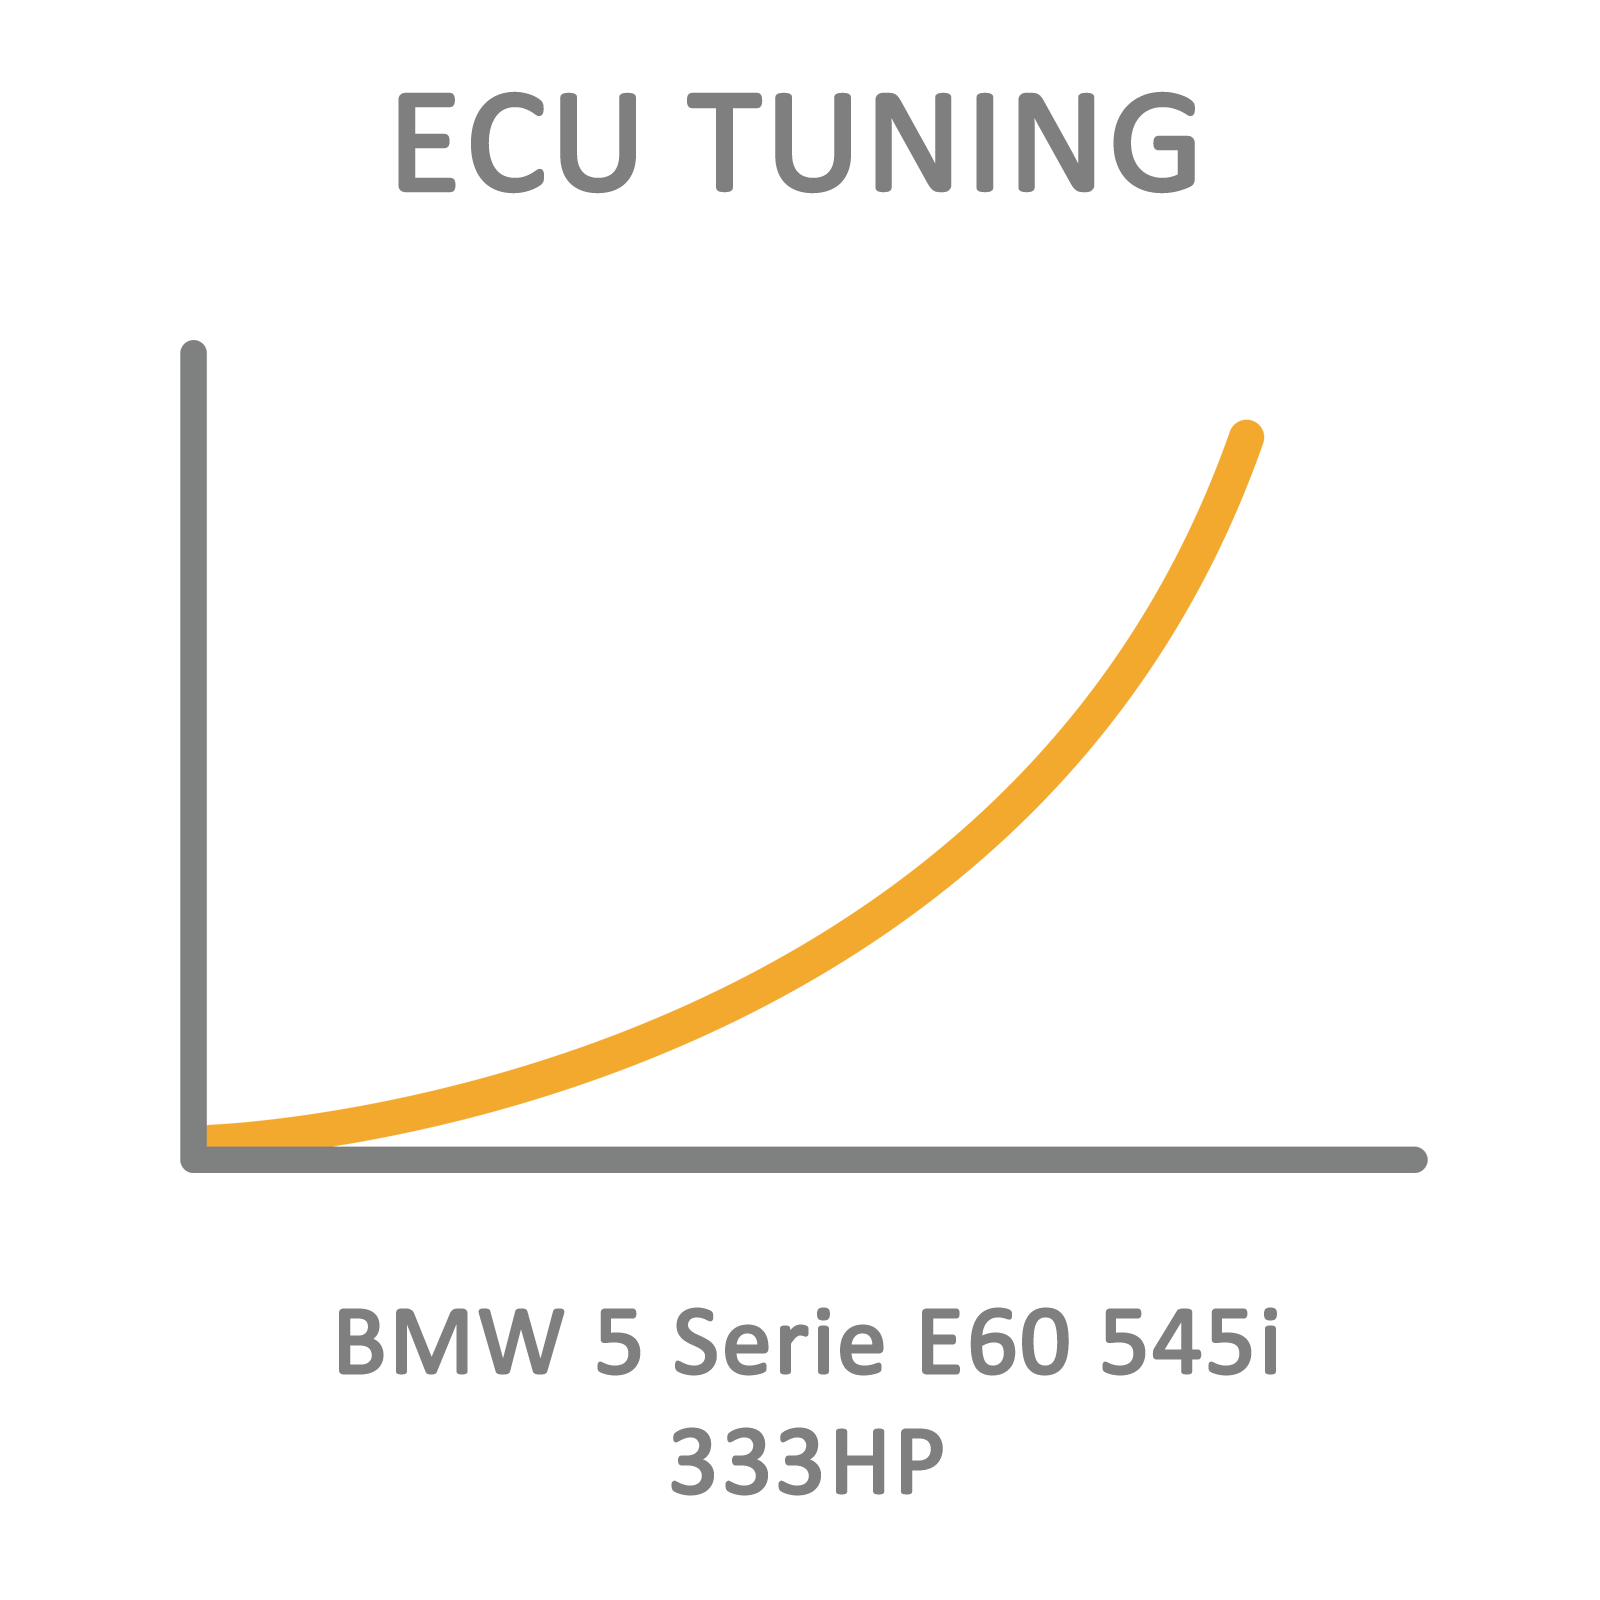 BMW 5 Series E60 545i 333HP ECU Tuning Remapping Programming